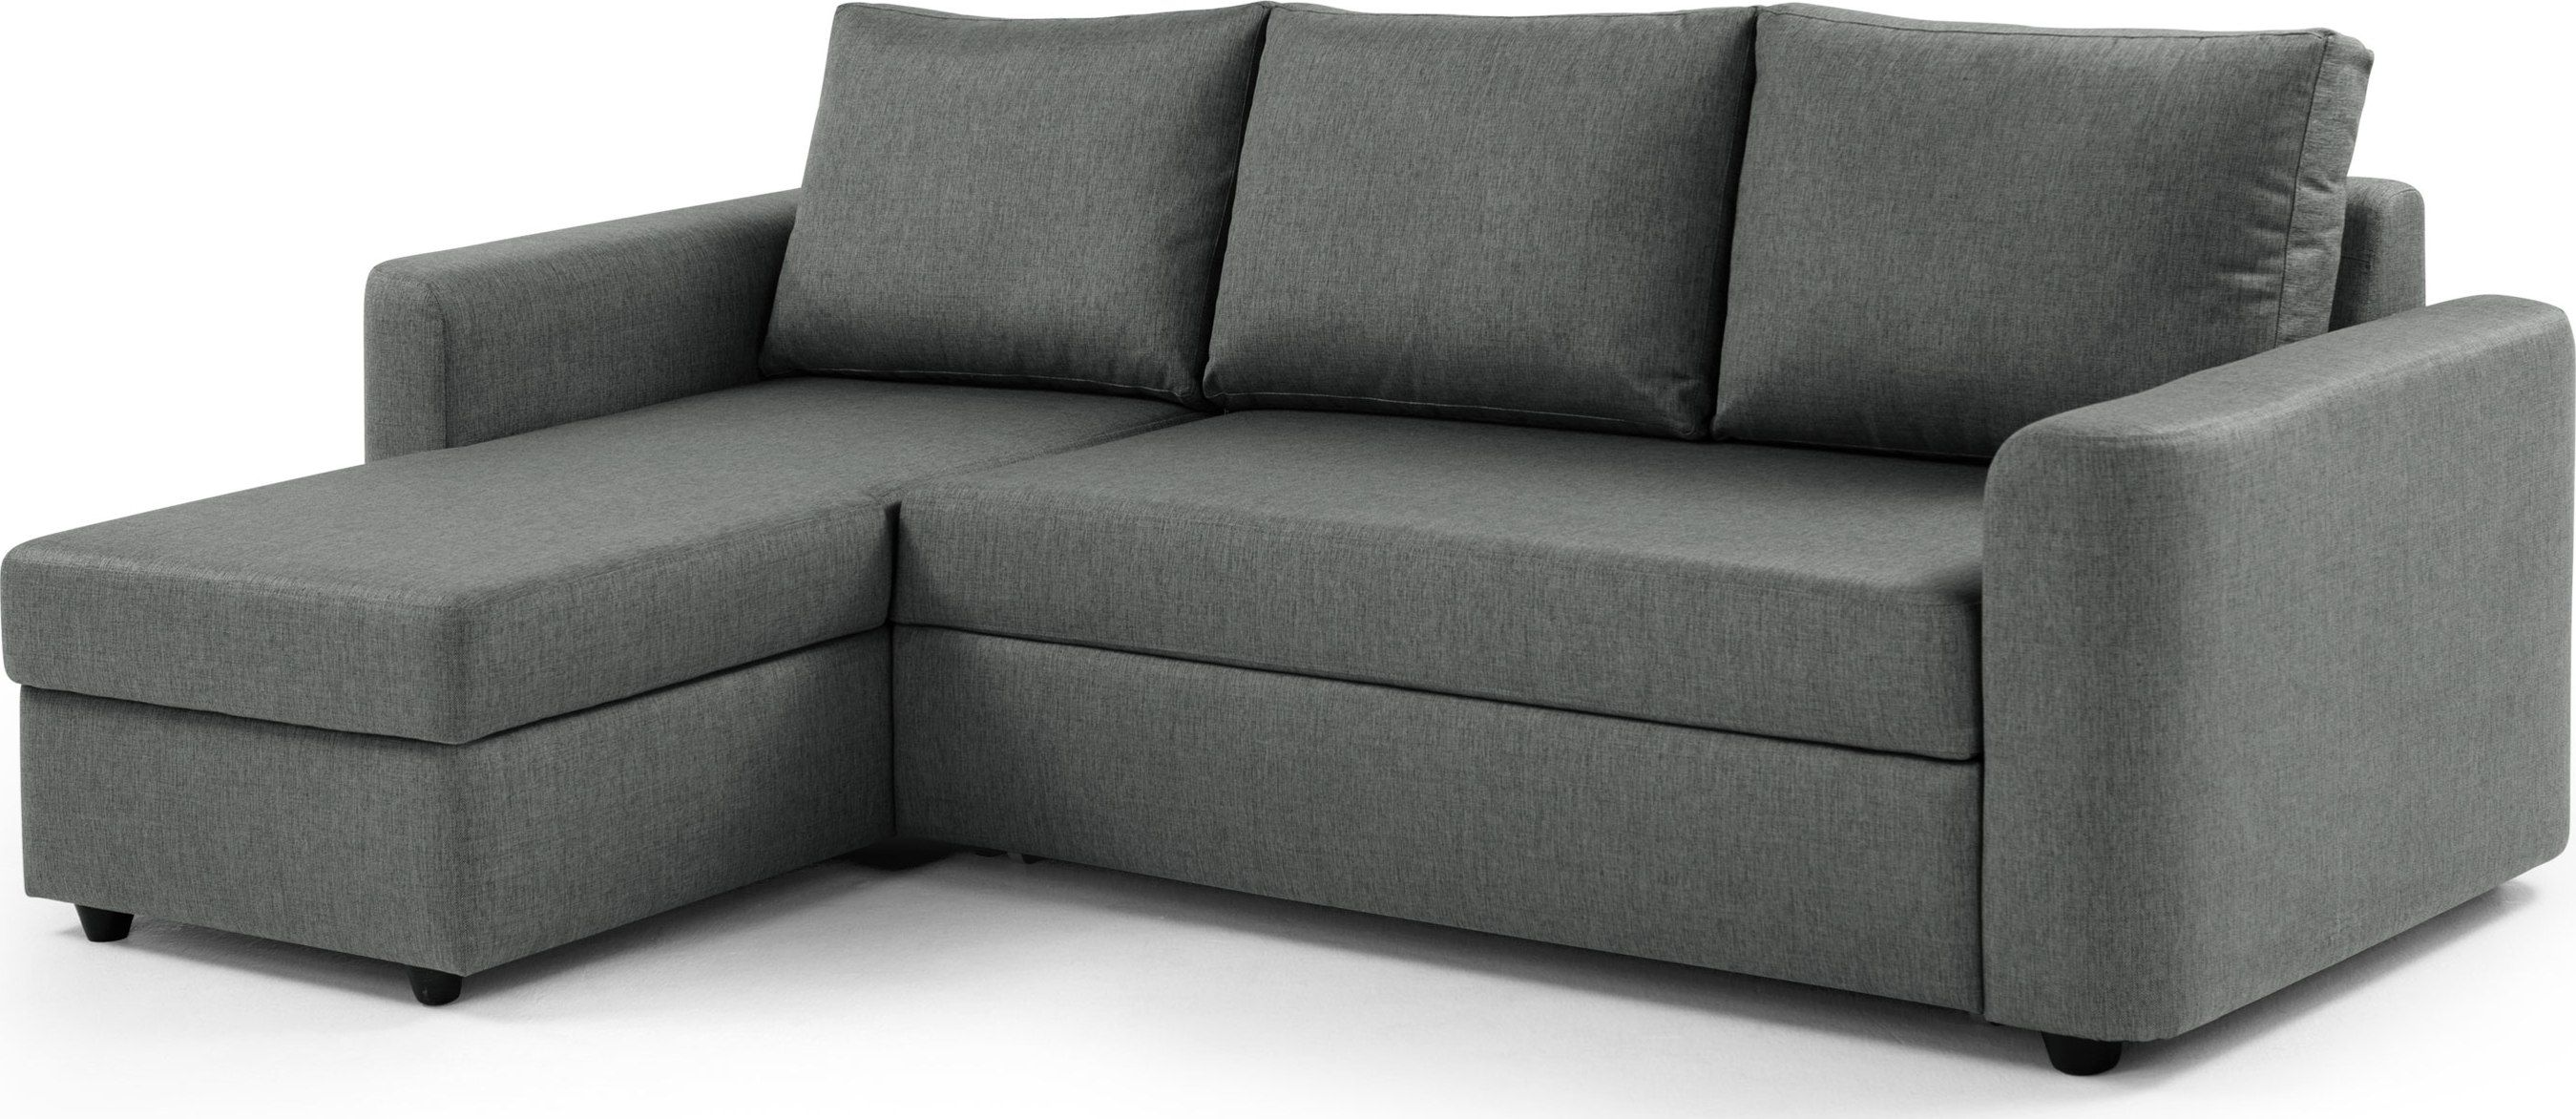 Albie Left Corner Storage Sofa Bed, Steeple Grey from Made